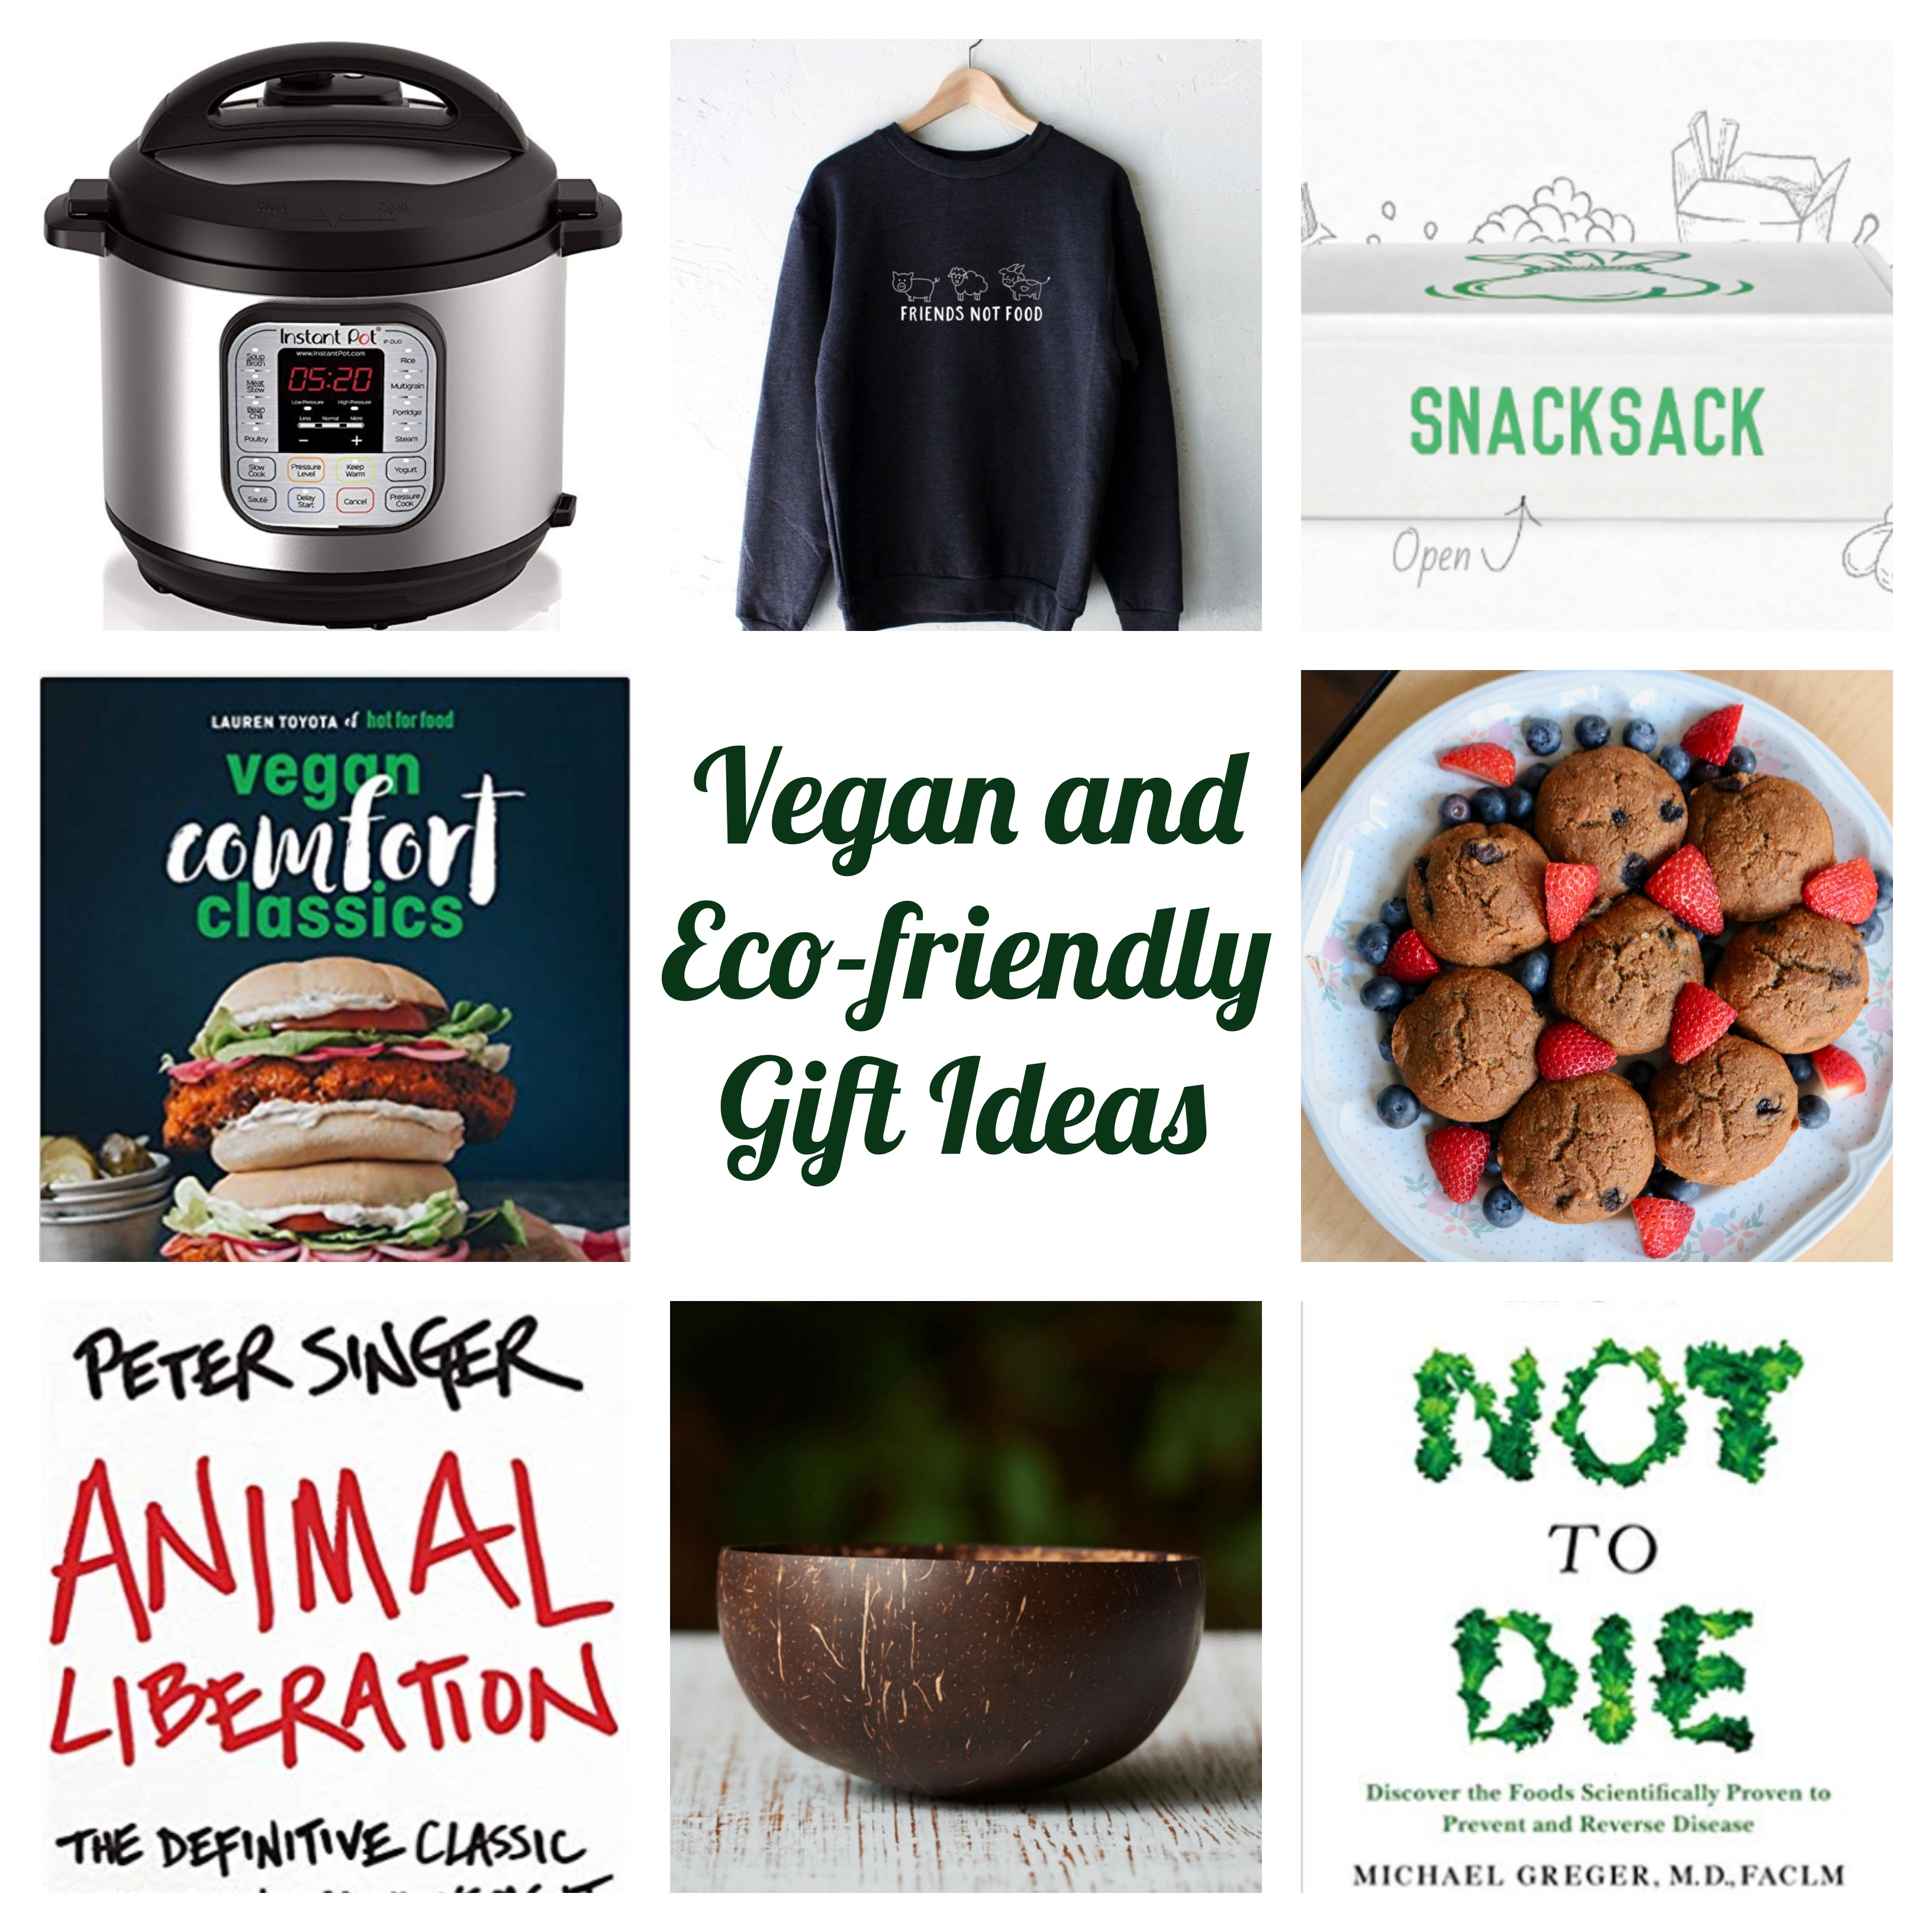 Vegan and Eco-friendly Gift Ideas